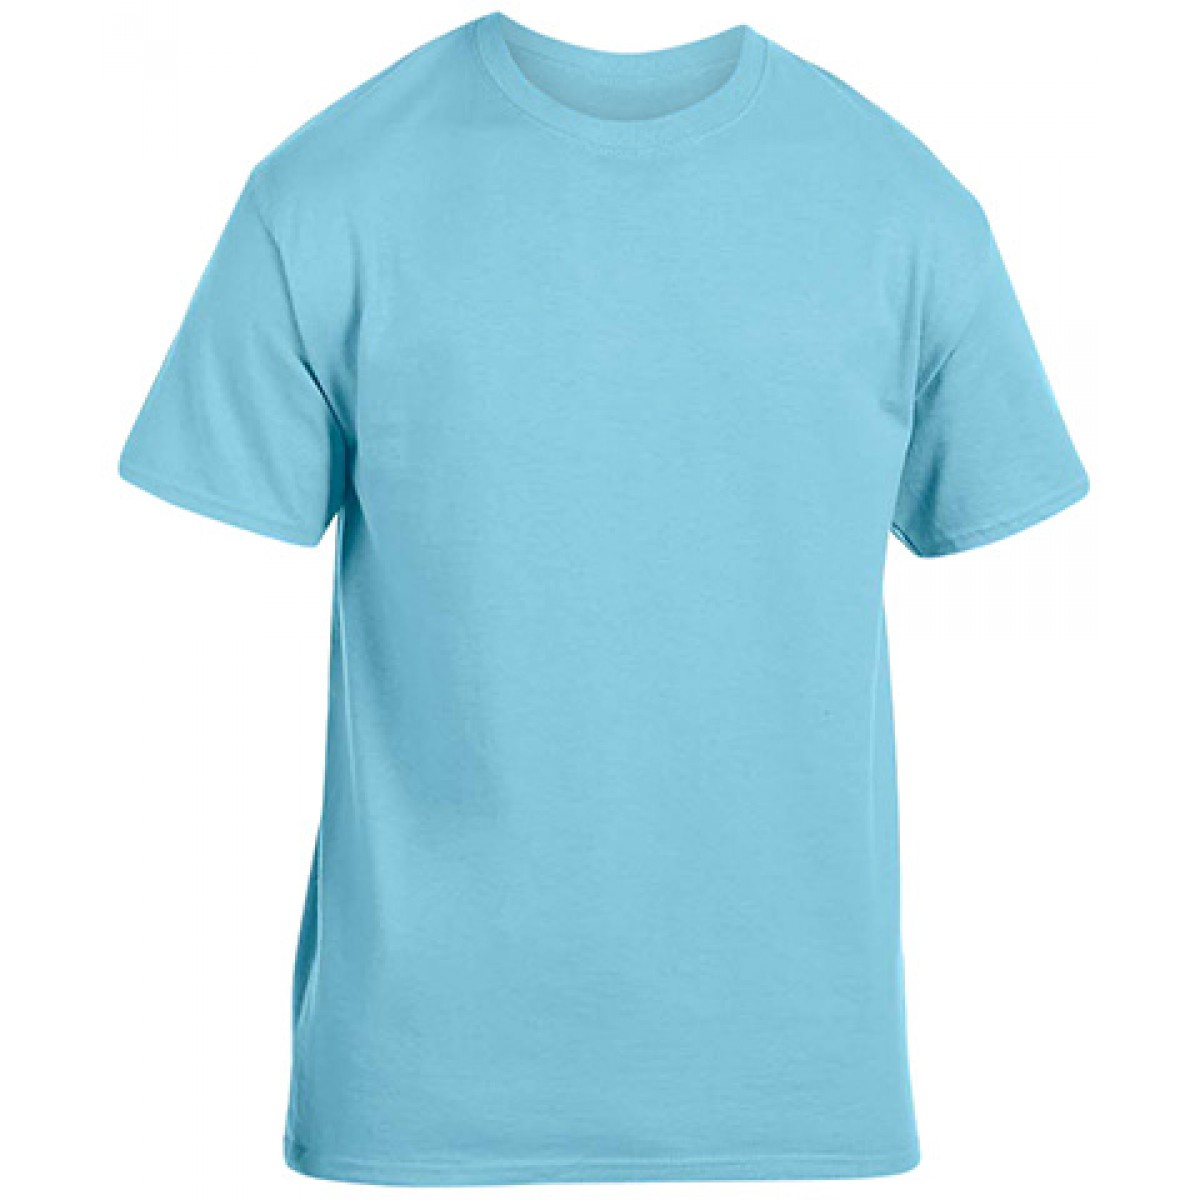 Soft 100% Cotton T-Shirt-Sky Blue-S